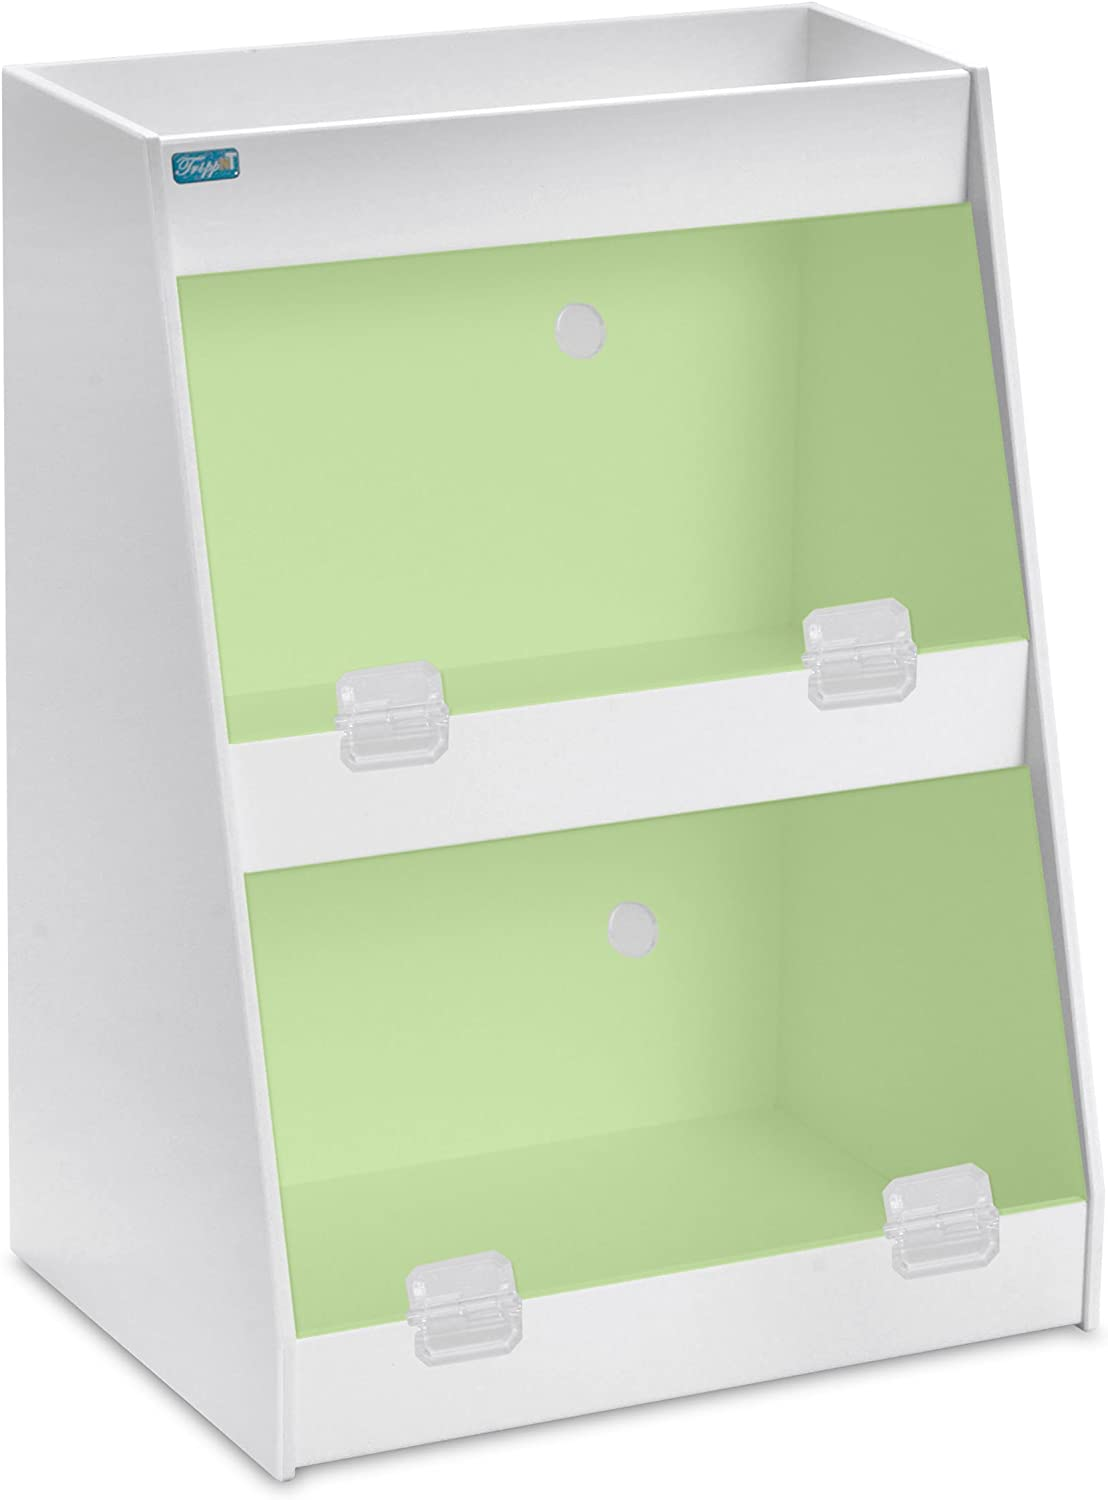 TrippNT 50013 PVC Angled Triple Safety Shelves with Green Door, 12-Inch Width x 16-Inch Height x 9-Inch Depth, Green White